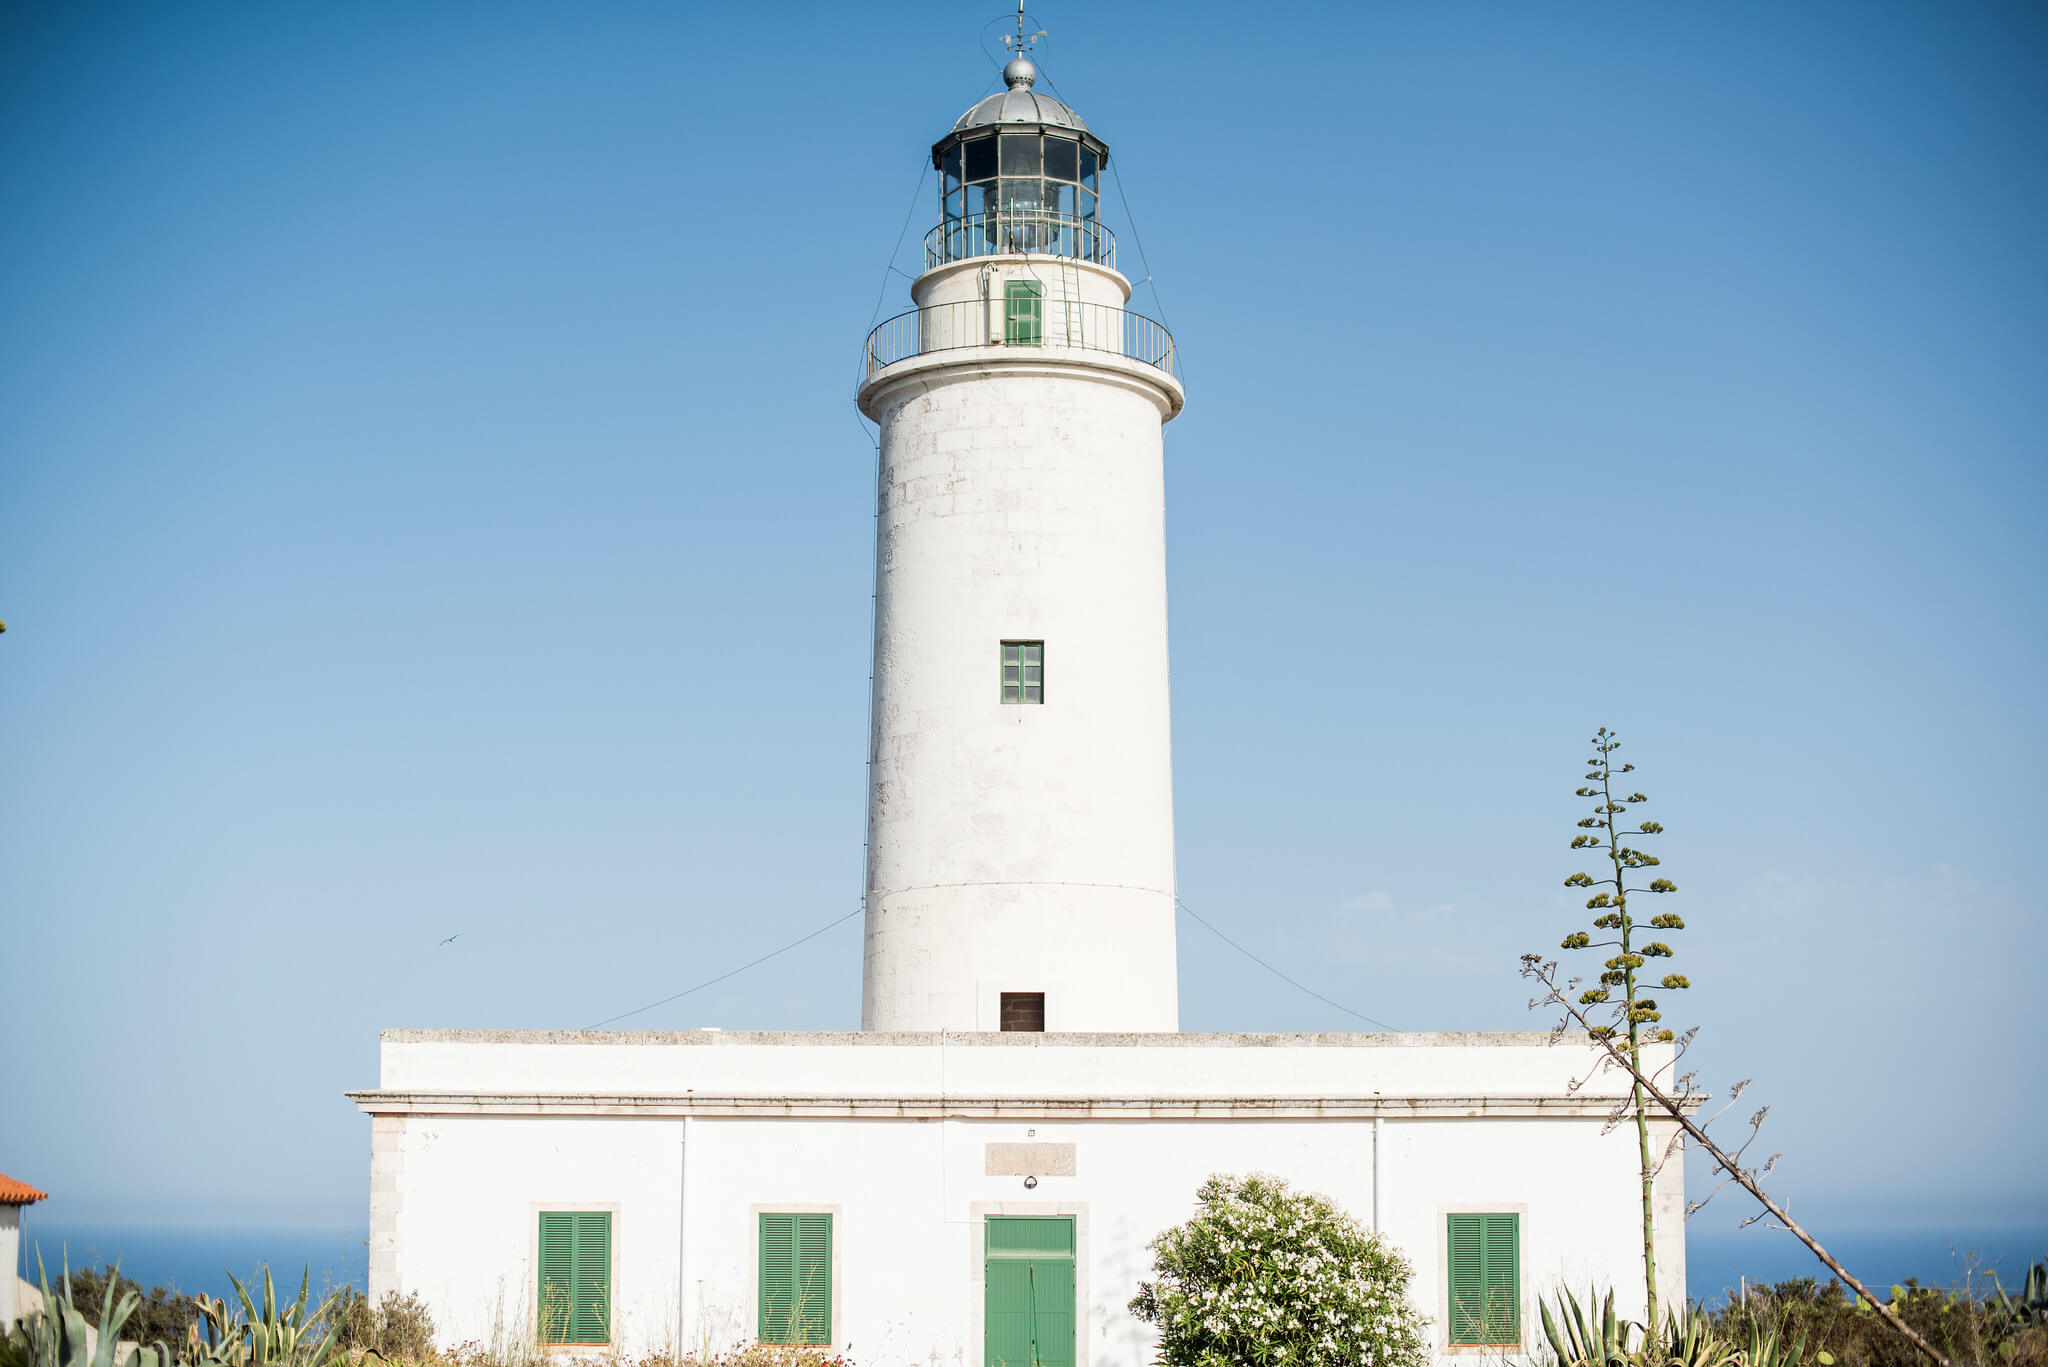 https://www.white-ibiza.com/wp-content/uploads/2020/03/formentera-lighthouses-2020-06.jpg